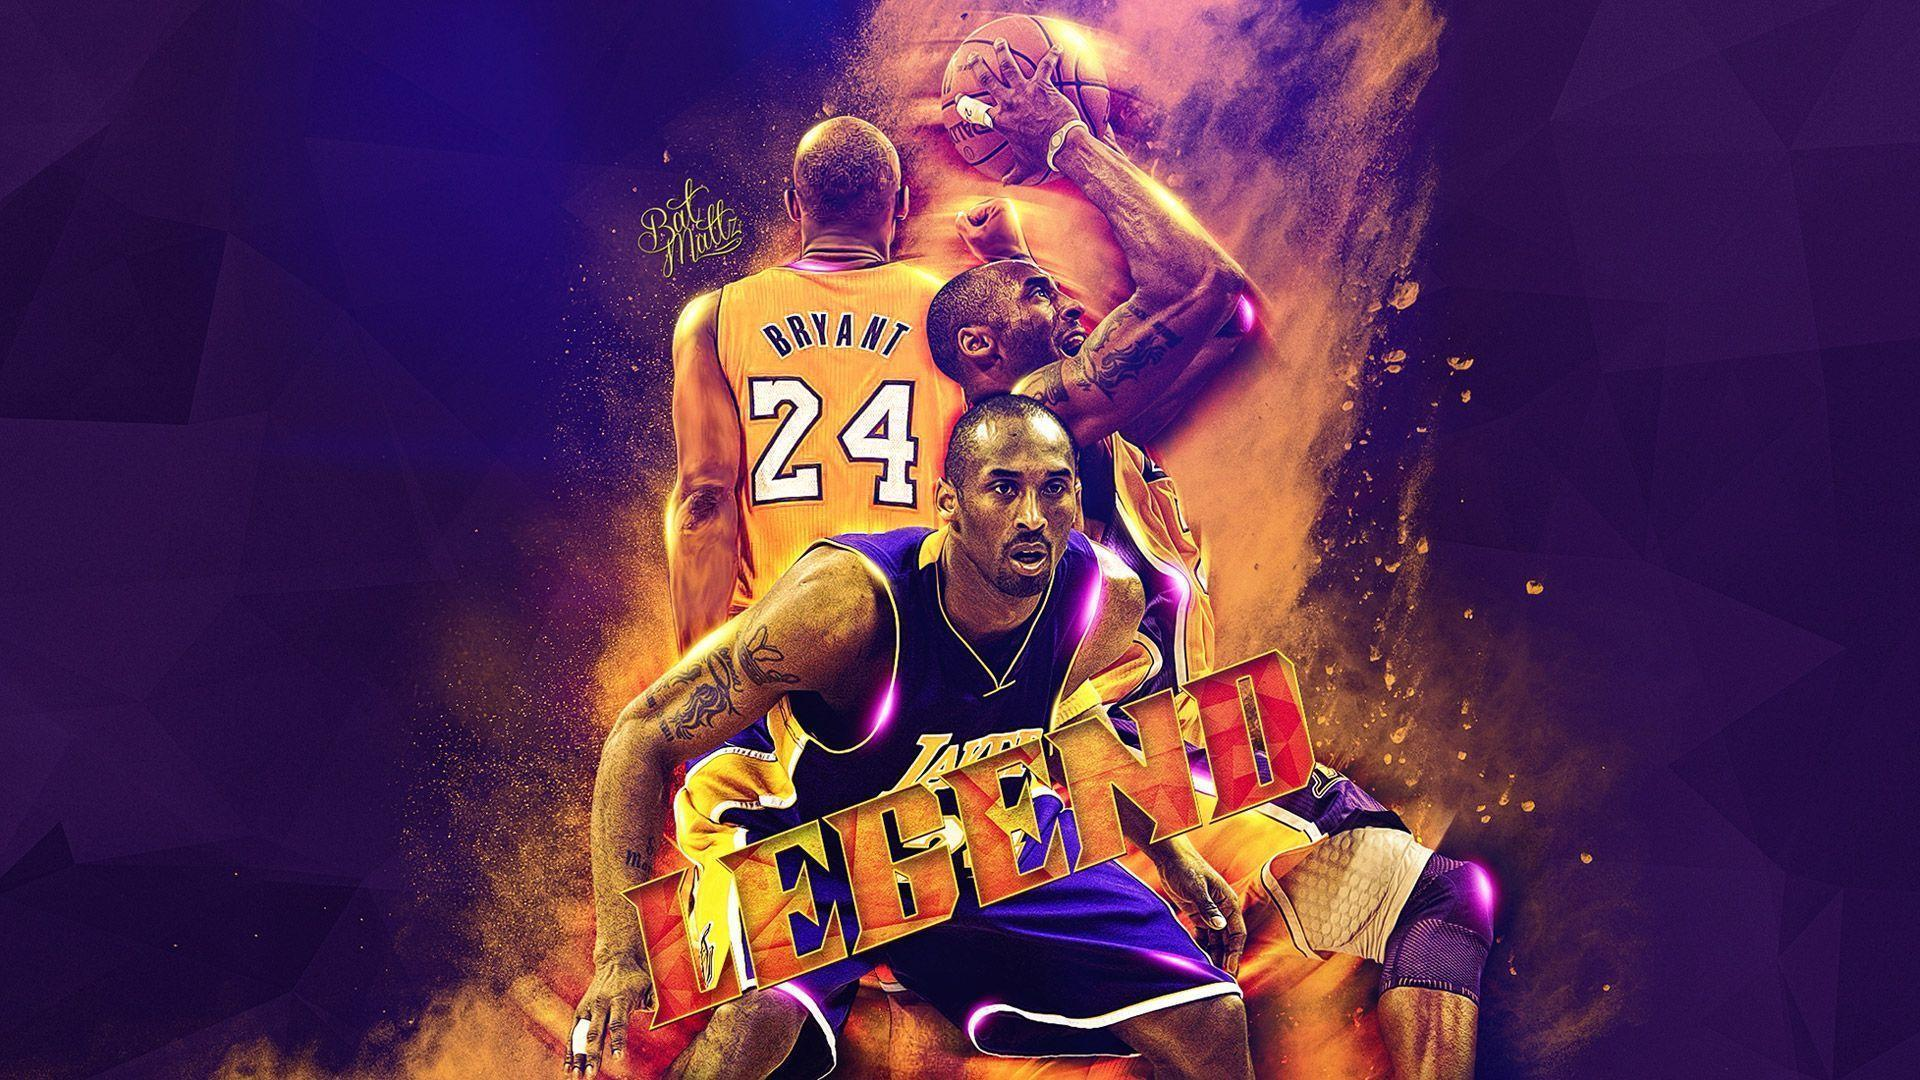 Basketball Wallpapers at BasketWallpapers.com | Basketball and NBA ...